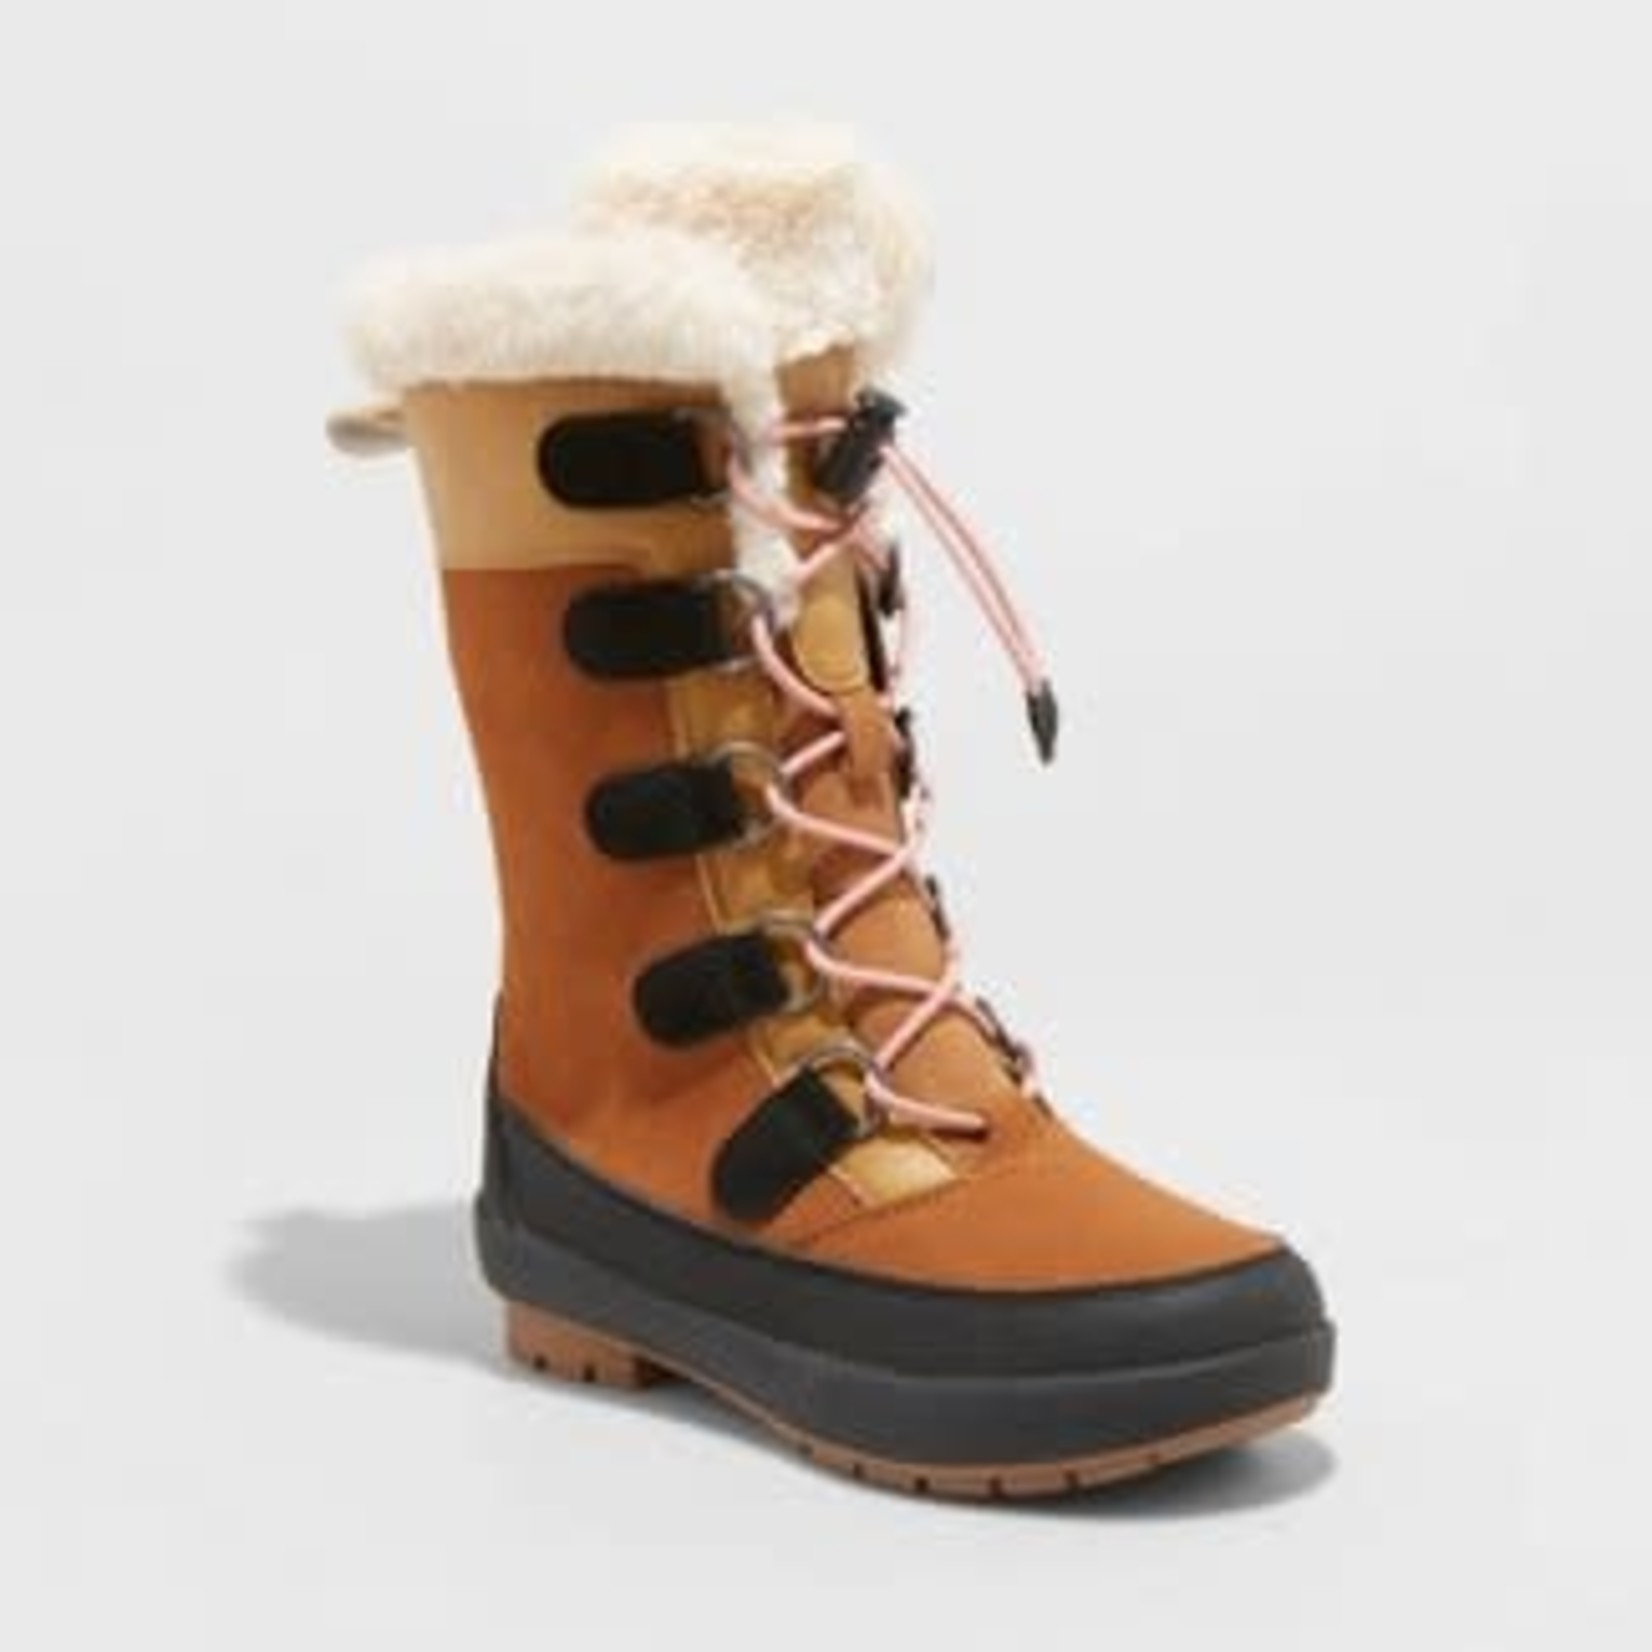 Kids' Alberta Winter Boots - All in Motion™ Size 4